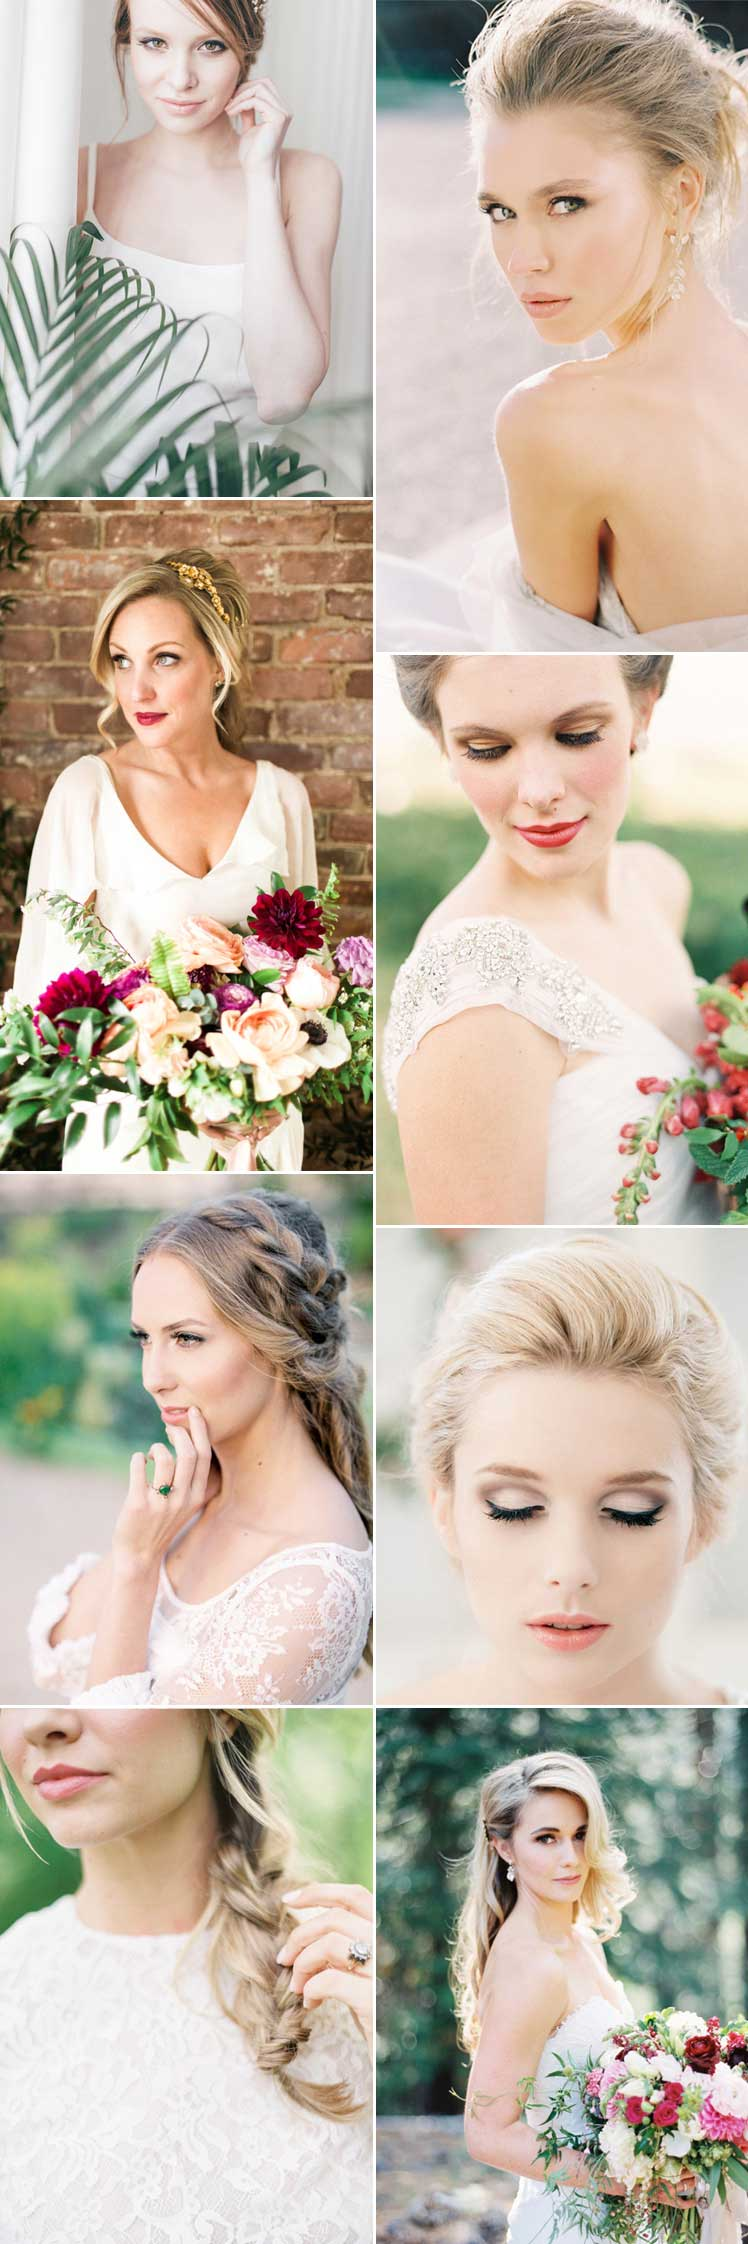 Ideas for your wedding day make-up